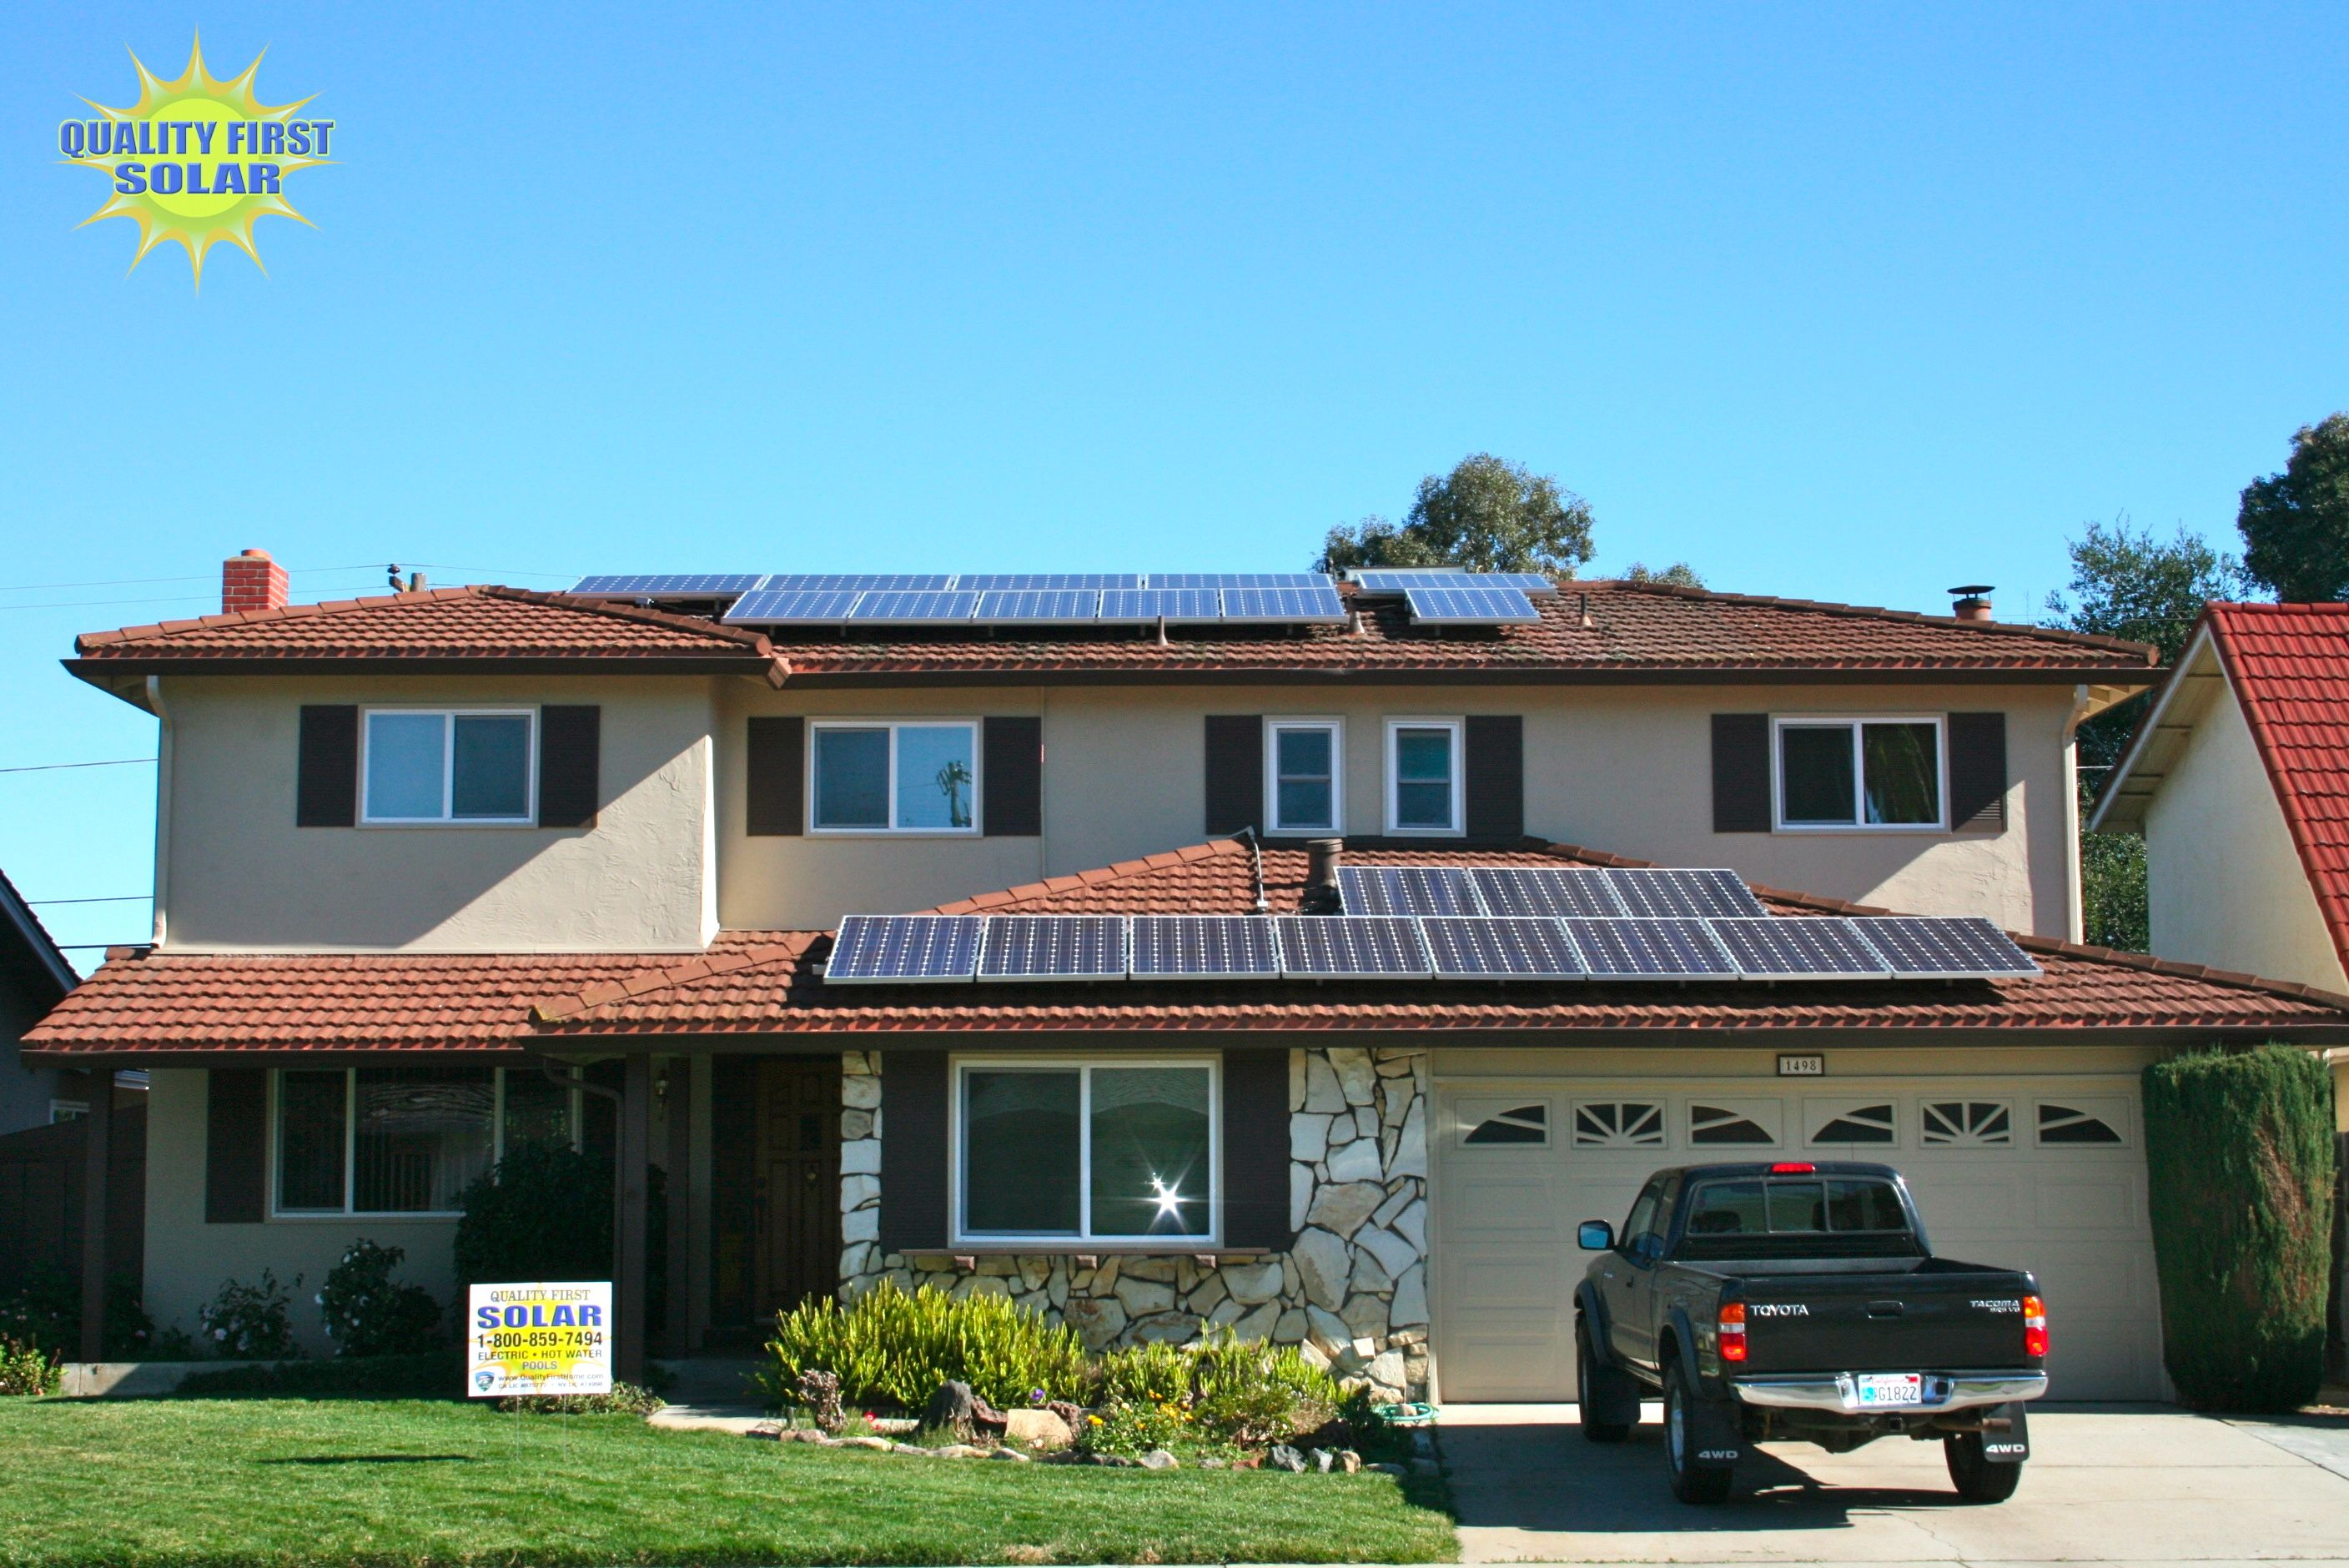 Top 15 Green Home Improvements And Their Costs U2013 DIY Green Living Ideas